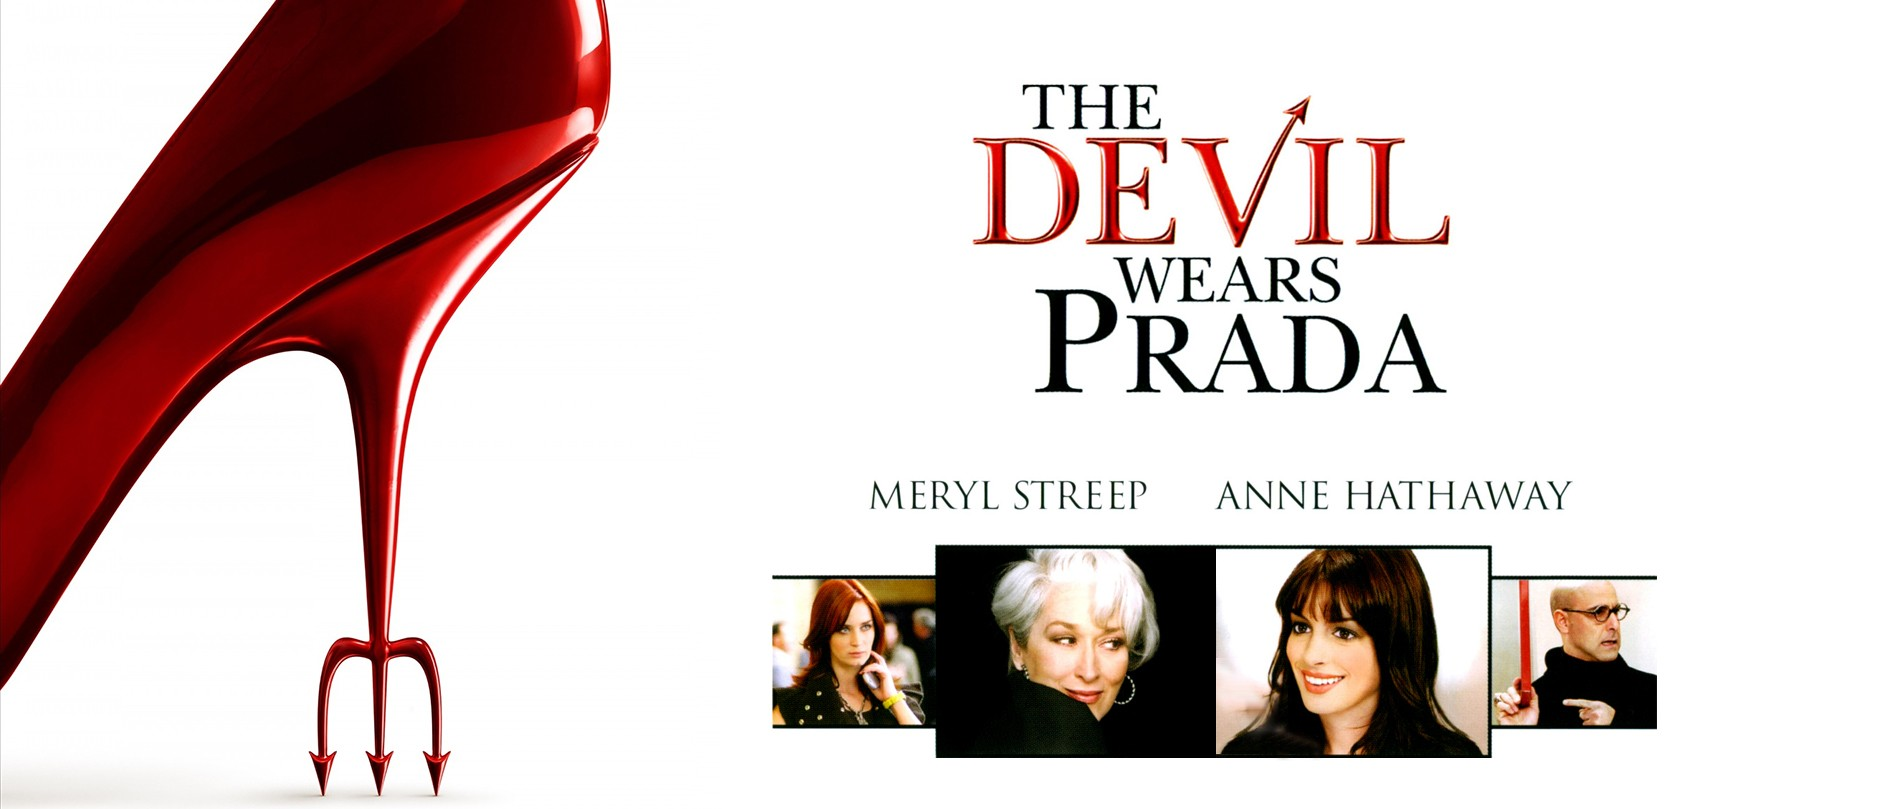 Amazing The Devil Wears Prada Pictures & Backgrounds